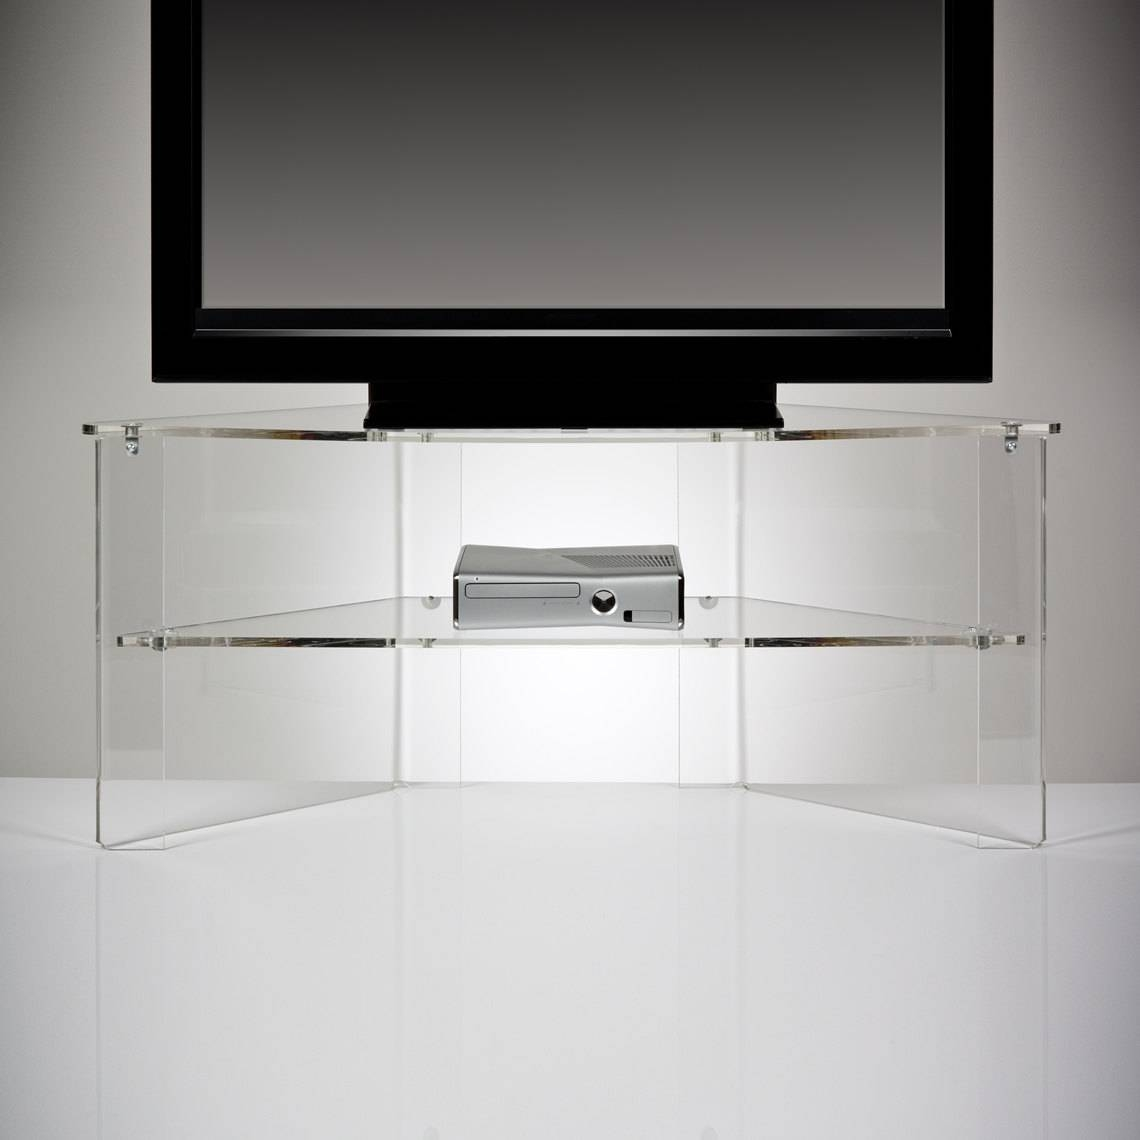 Perspex Acrylic Transparent Tv Stand Premium Acrylic Made within Acrylic Tv Stands (Image 10 of 15)